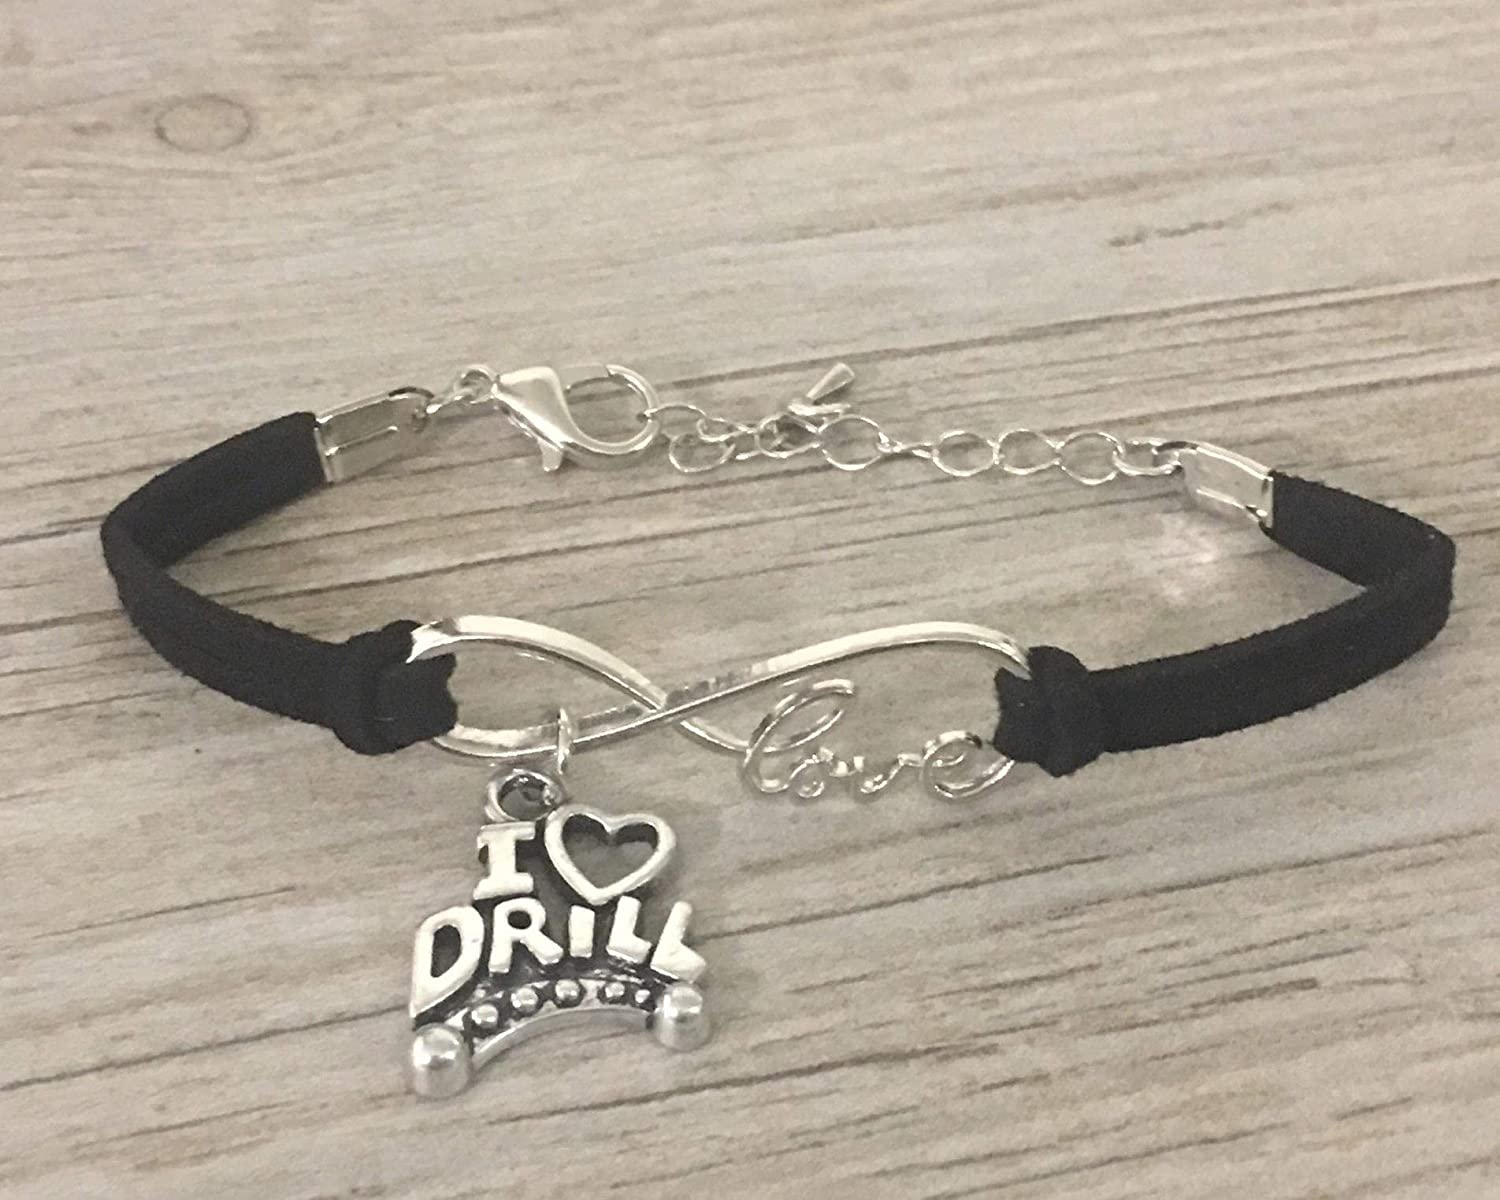 Sportybella Drill Team Charm Bracelet- Dance Drill Team Jewelry - Black Drill Charm Bracelet- Gift for Drill Team Girls